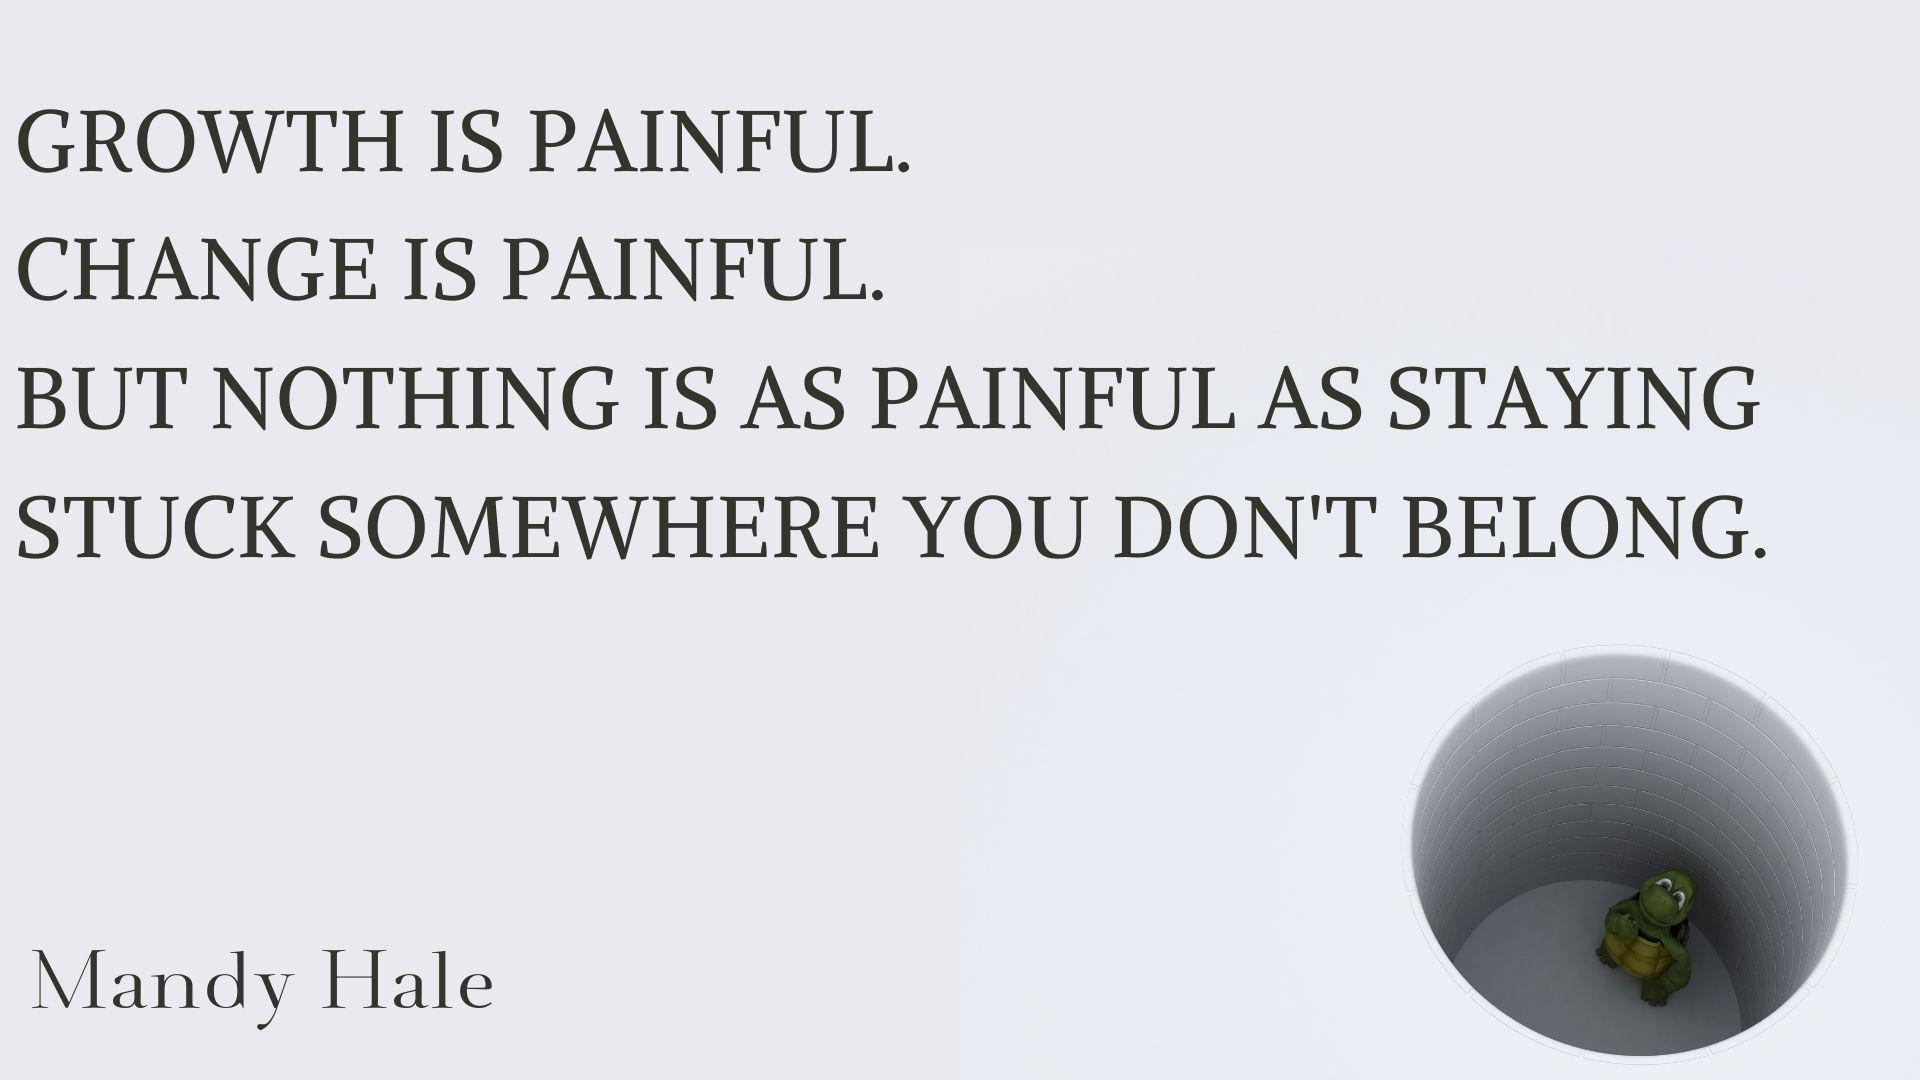 """Growth is painful. Change is painful. But nothing is as painful as staying stuck somewhere you don't belong."" Mandy Hale [1920 × 1080]"